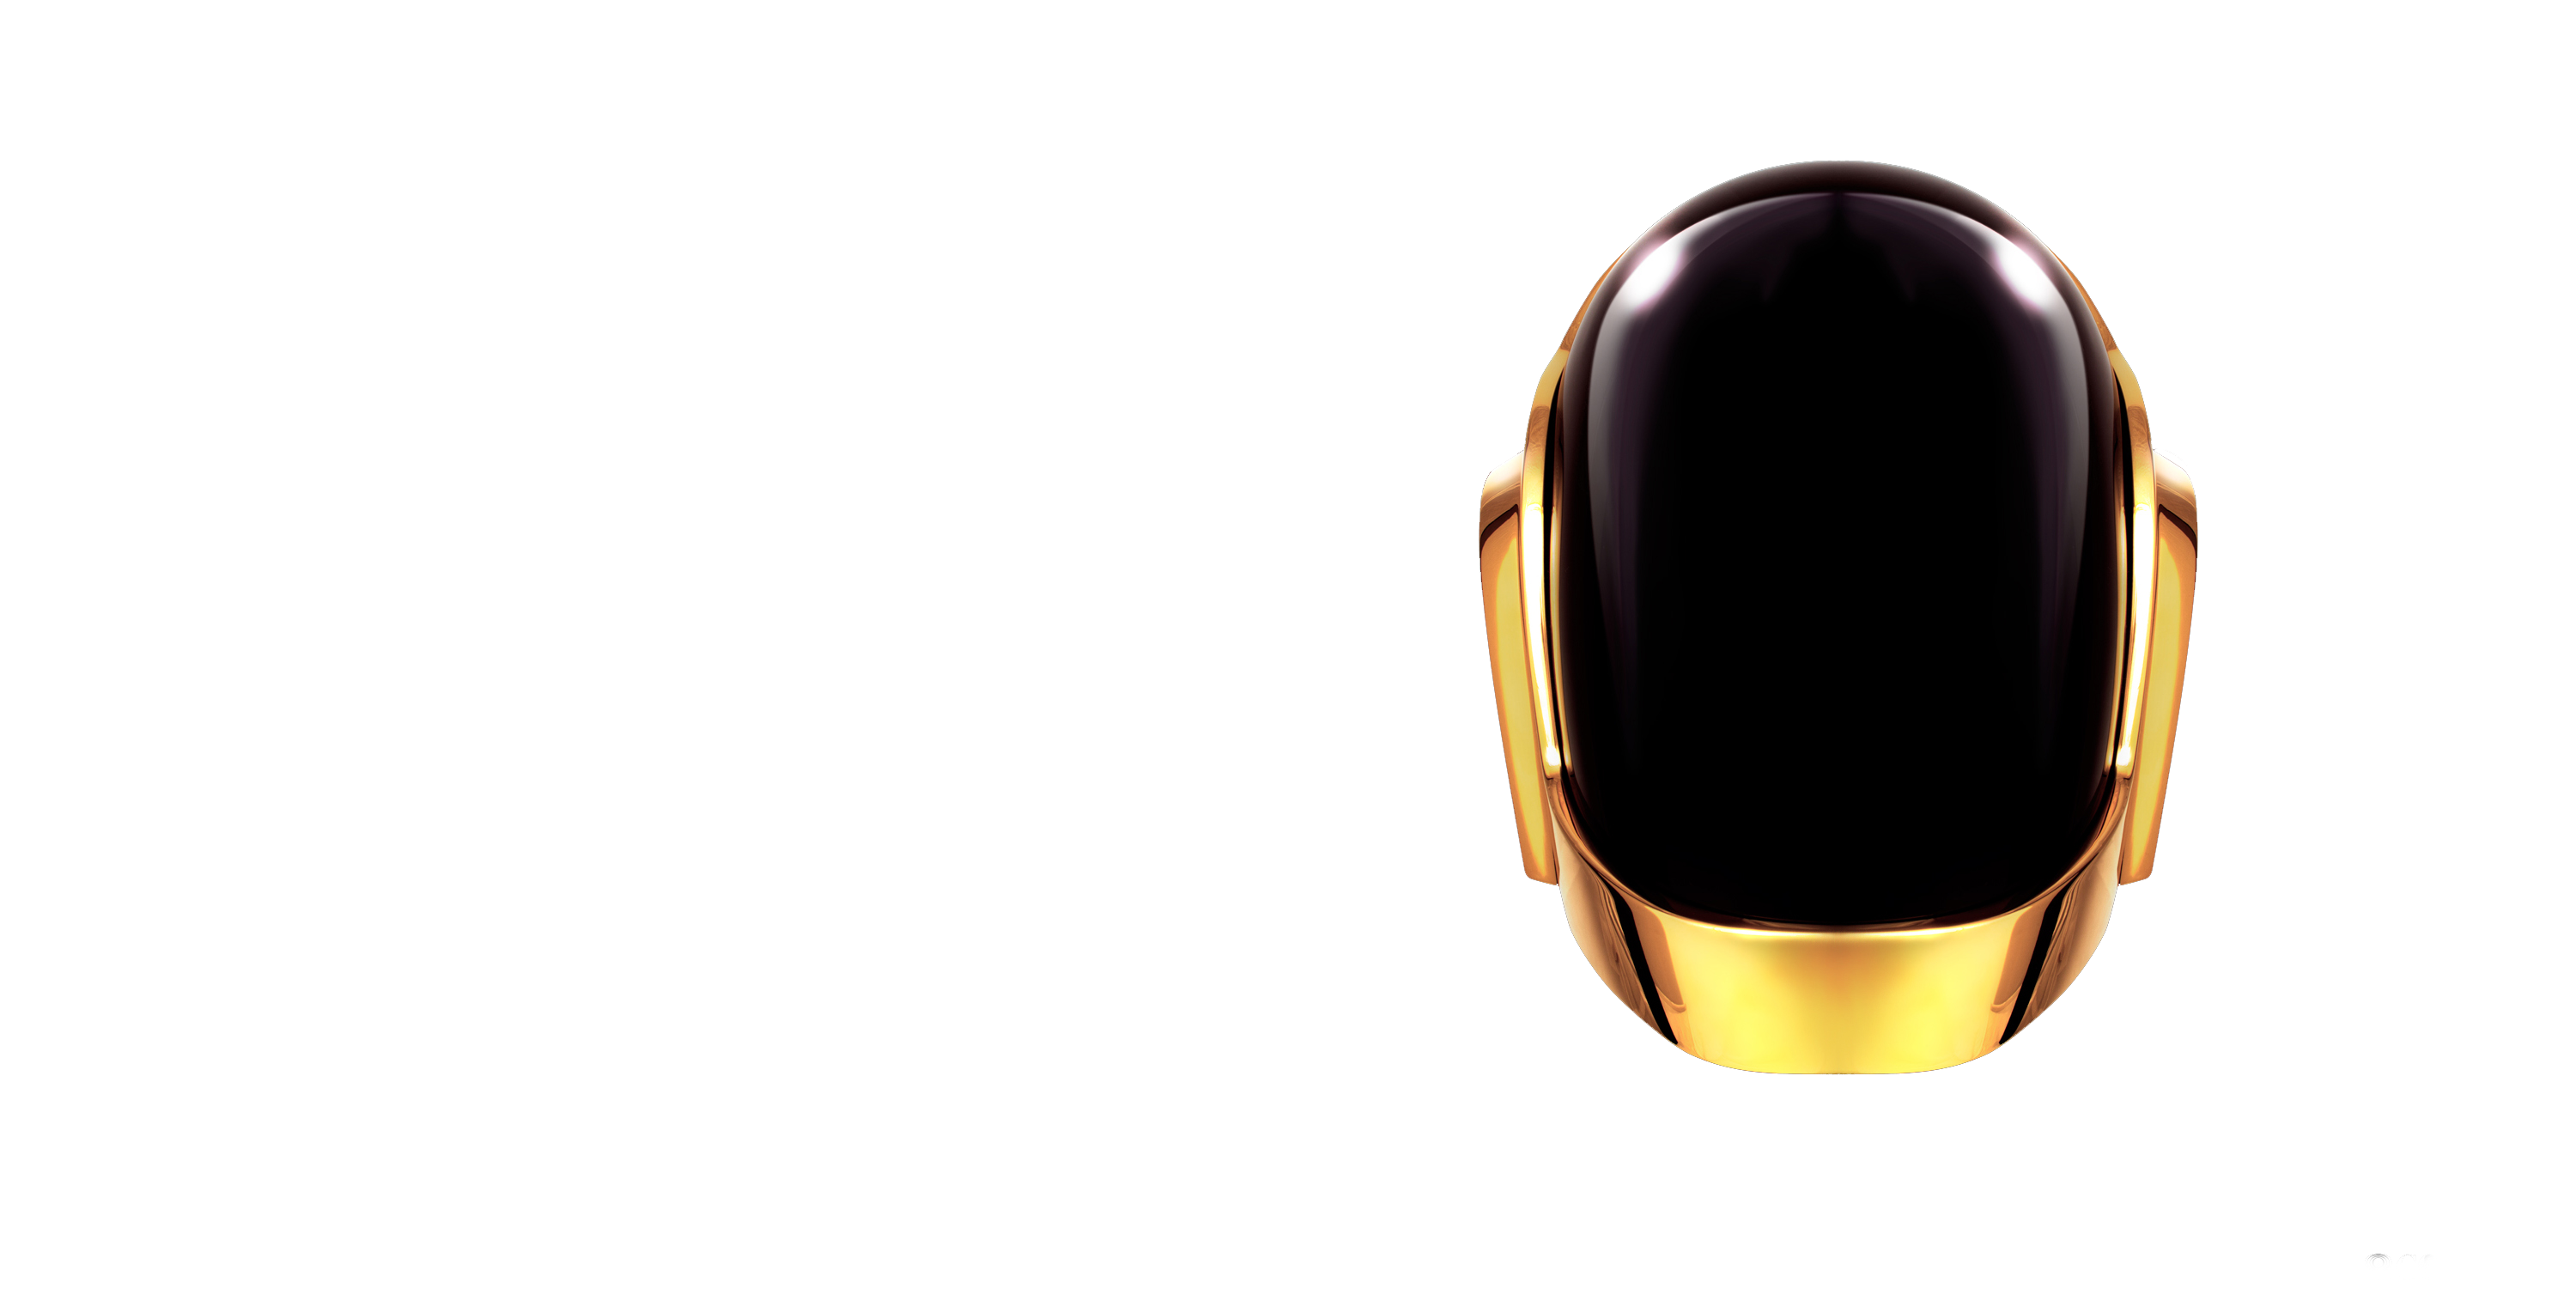 Daft punk helmet png. Anyone have any transparent